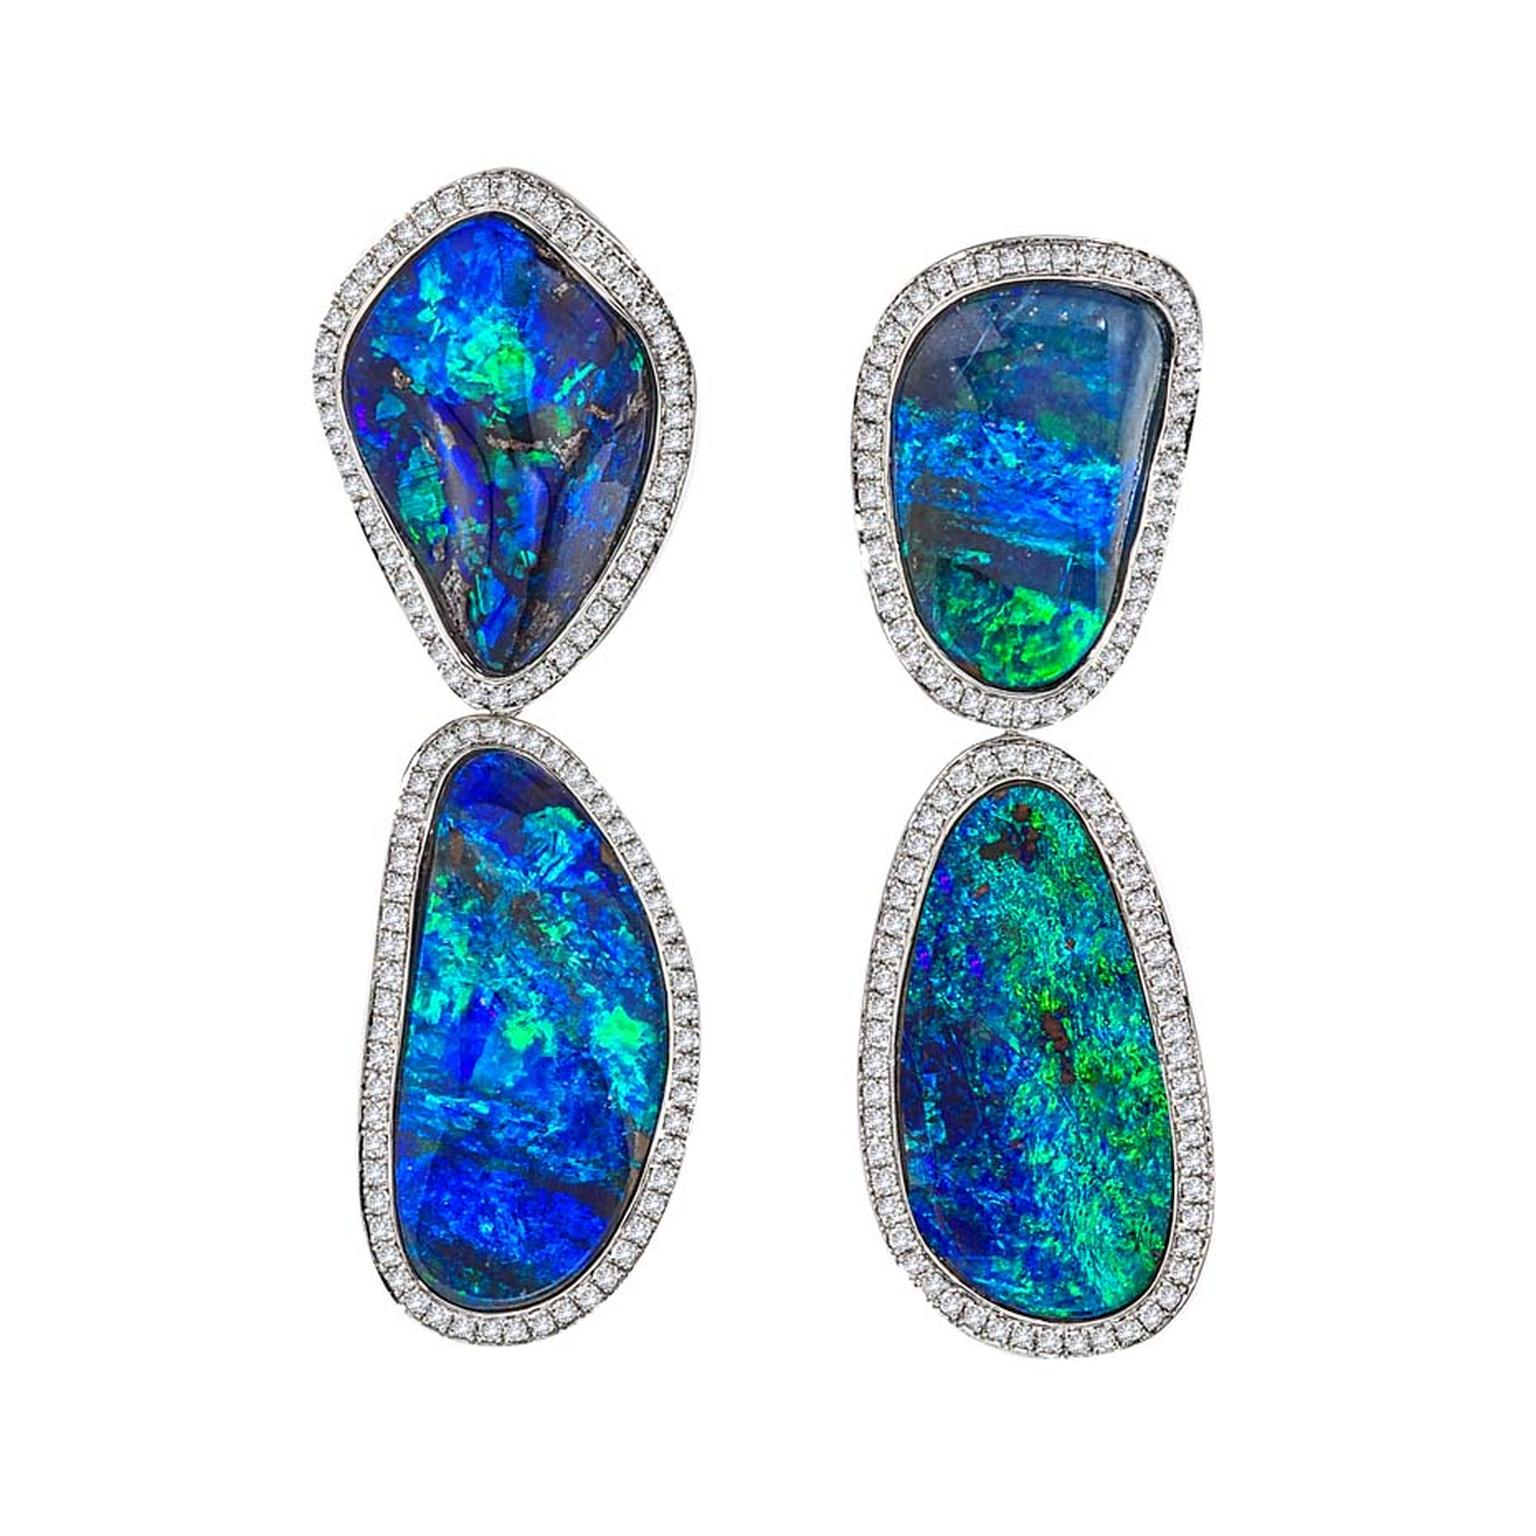 Katherine Jetter blue opal drop earrings with diamonds.